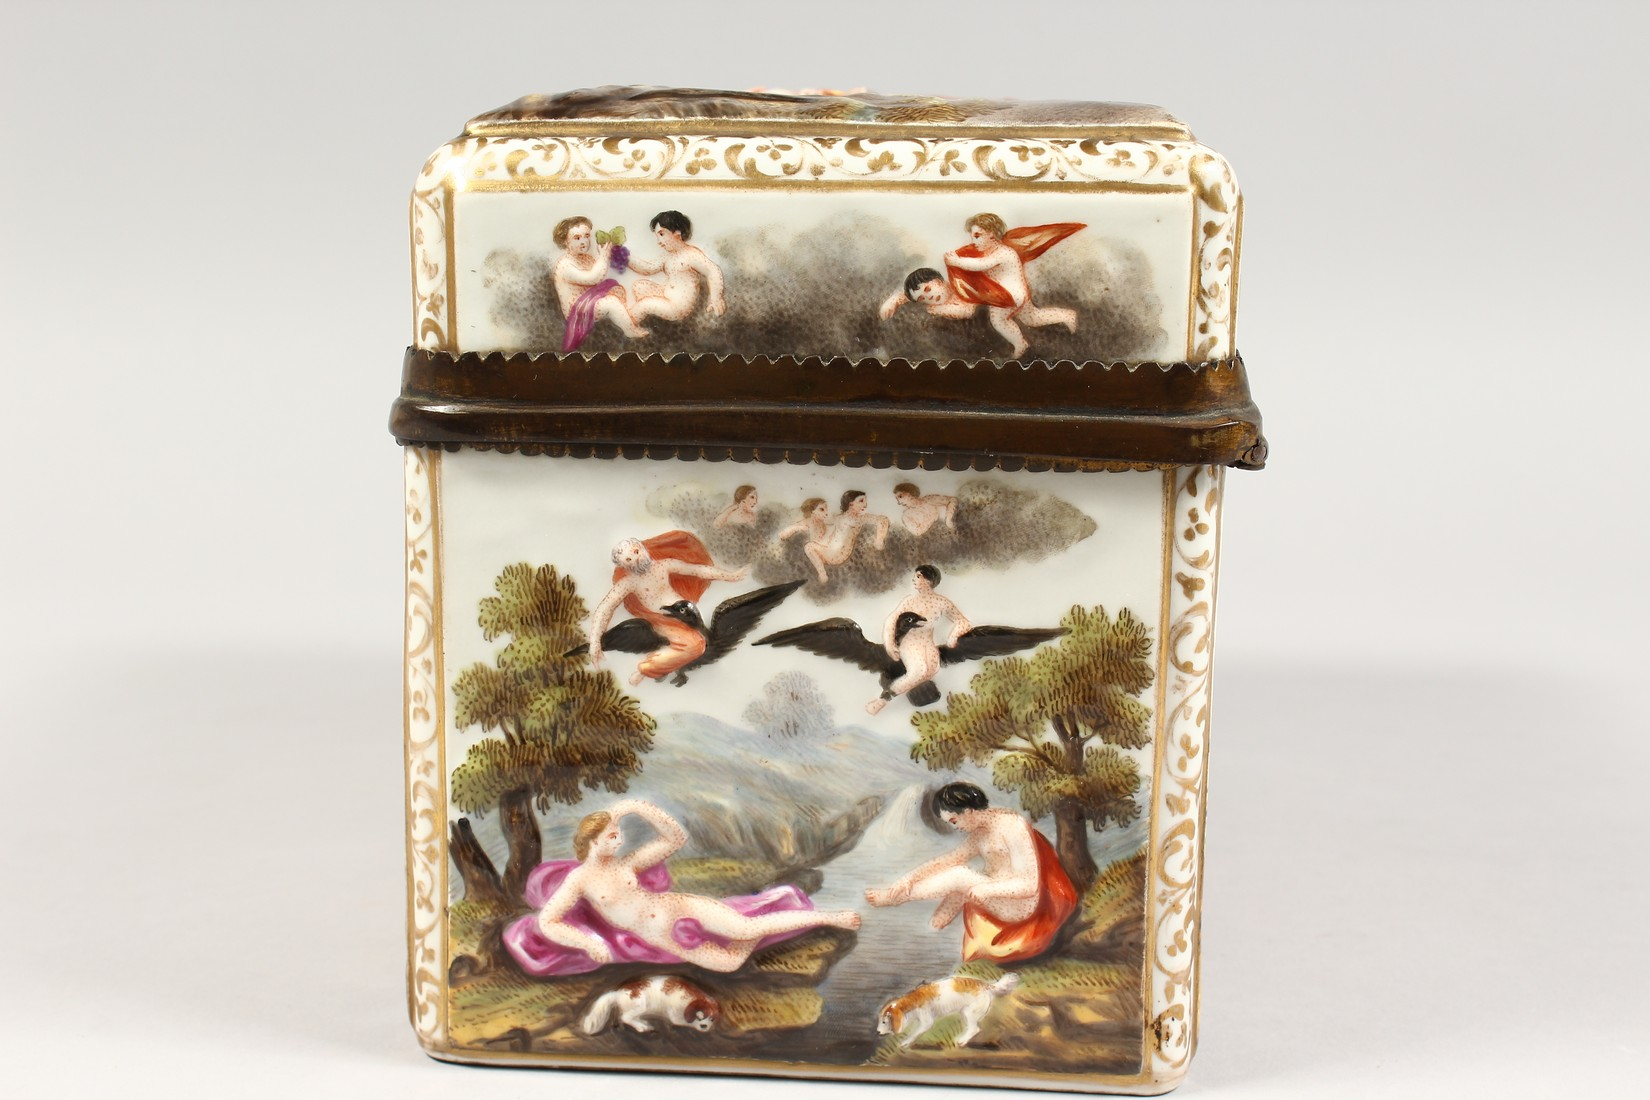 A GOOD CAPODIMONTE CASKET with classical figures in relief 9.5 ins wide. - Image 5 of 8